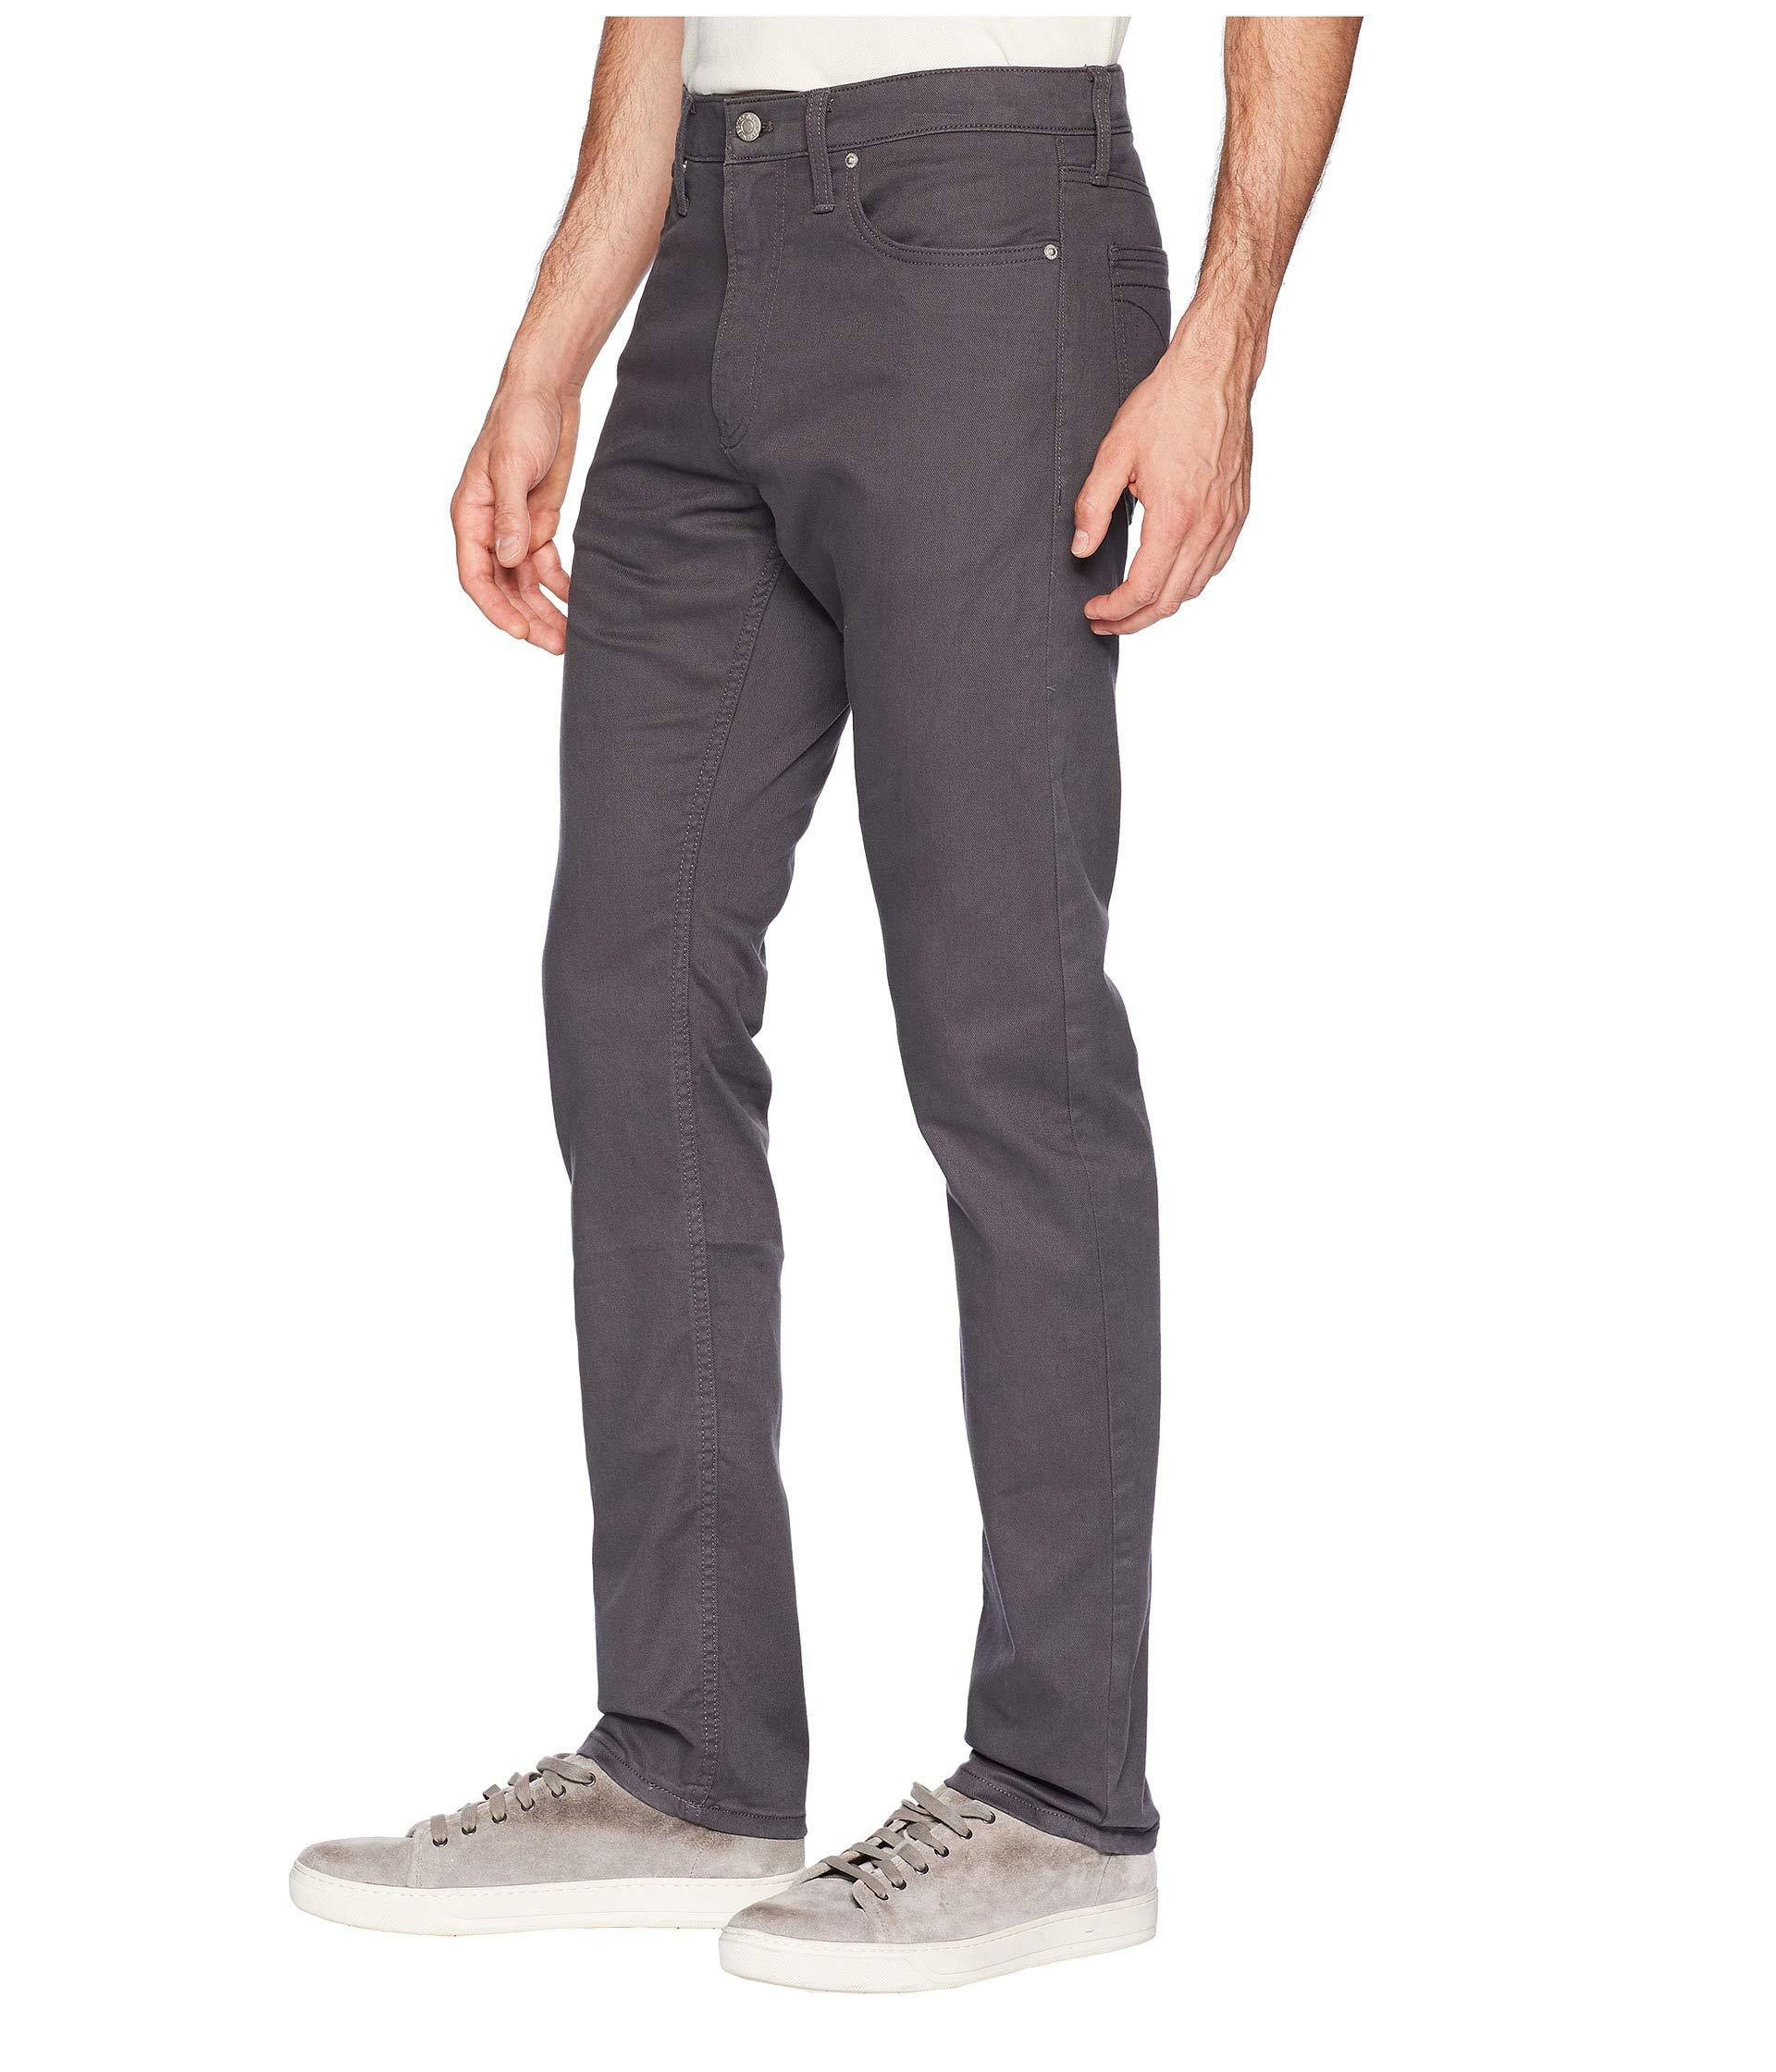 6f9612e3e22b Lyst - Calvin Klein Five-pocket Stretch Twill Pants (black) Men s ...